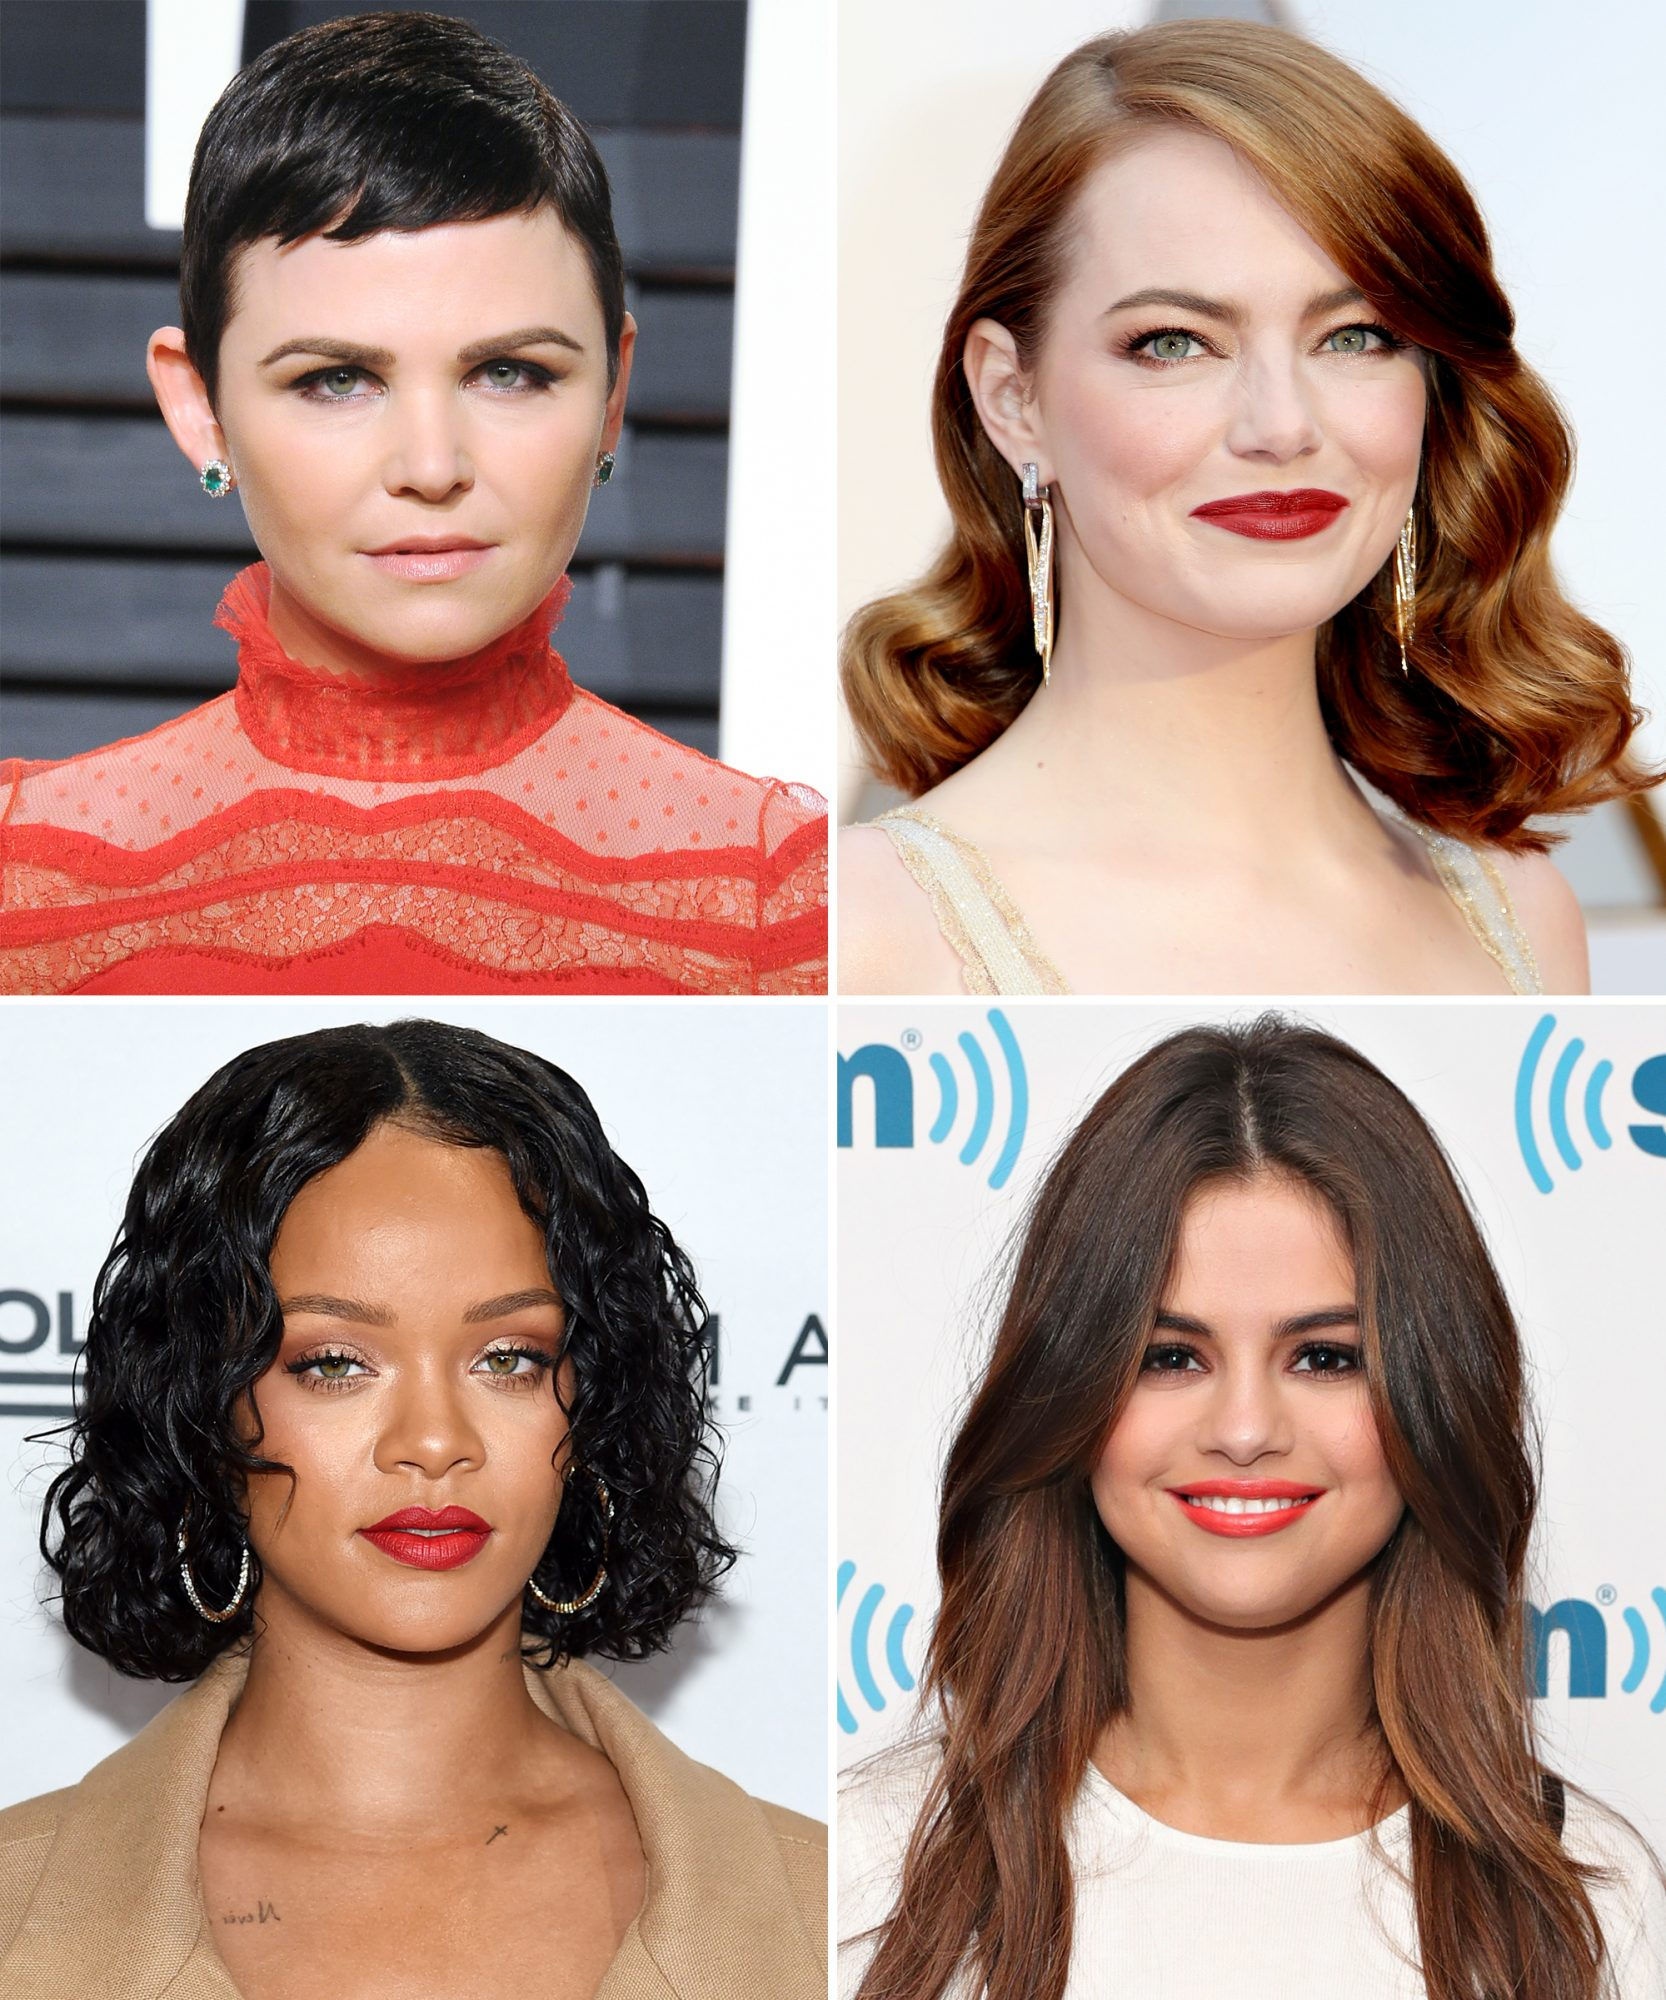 Find the Right Cut for Your Face Shape